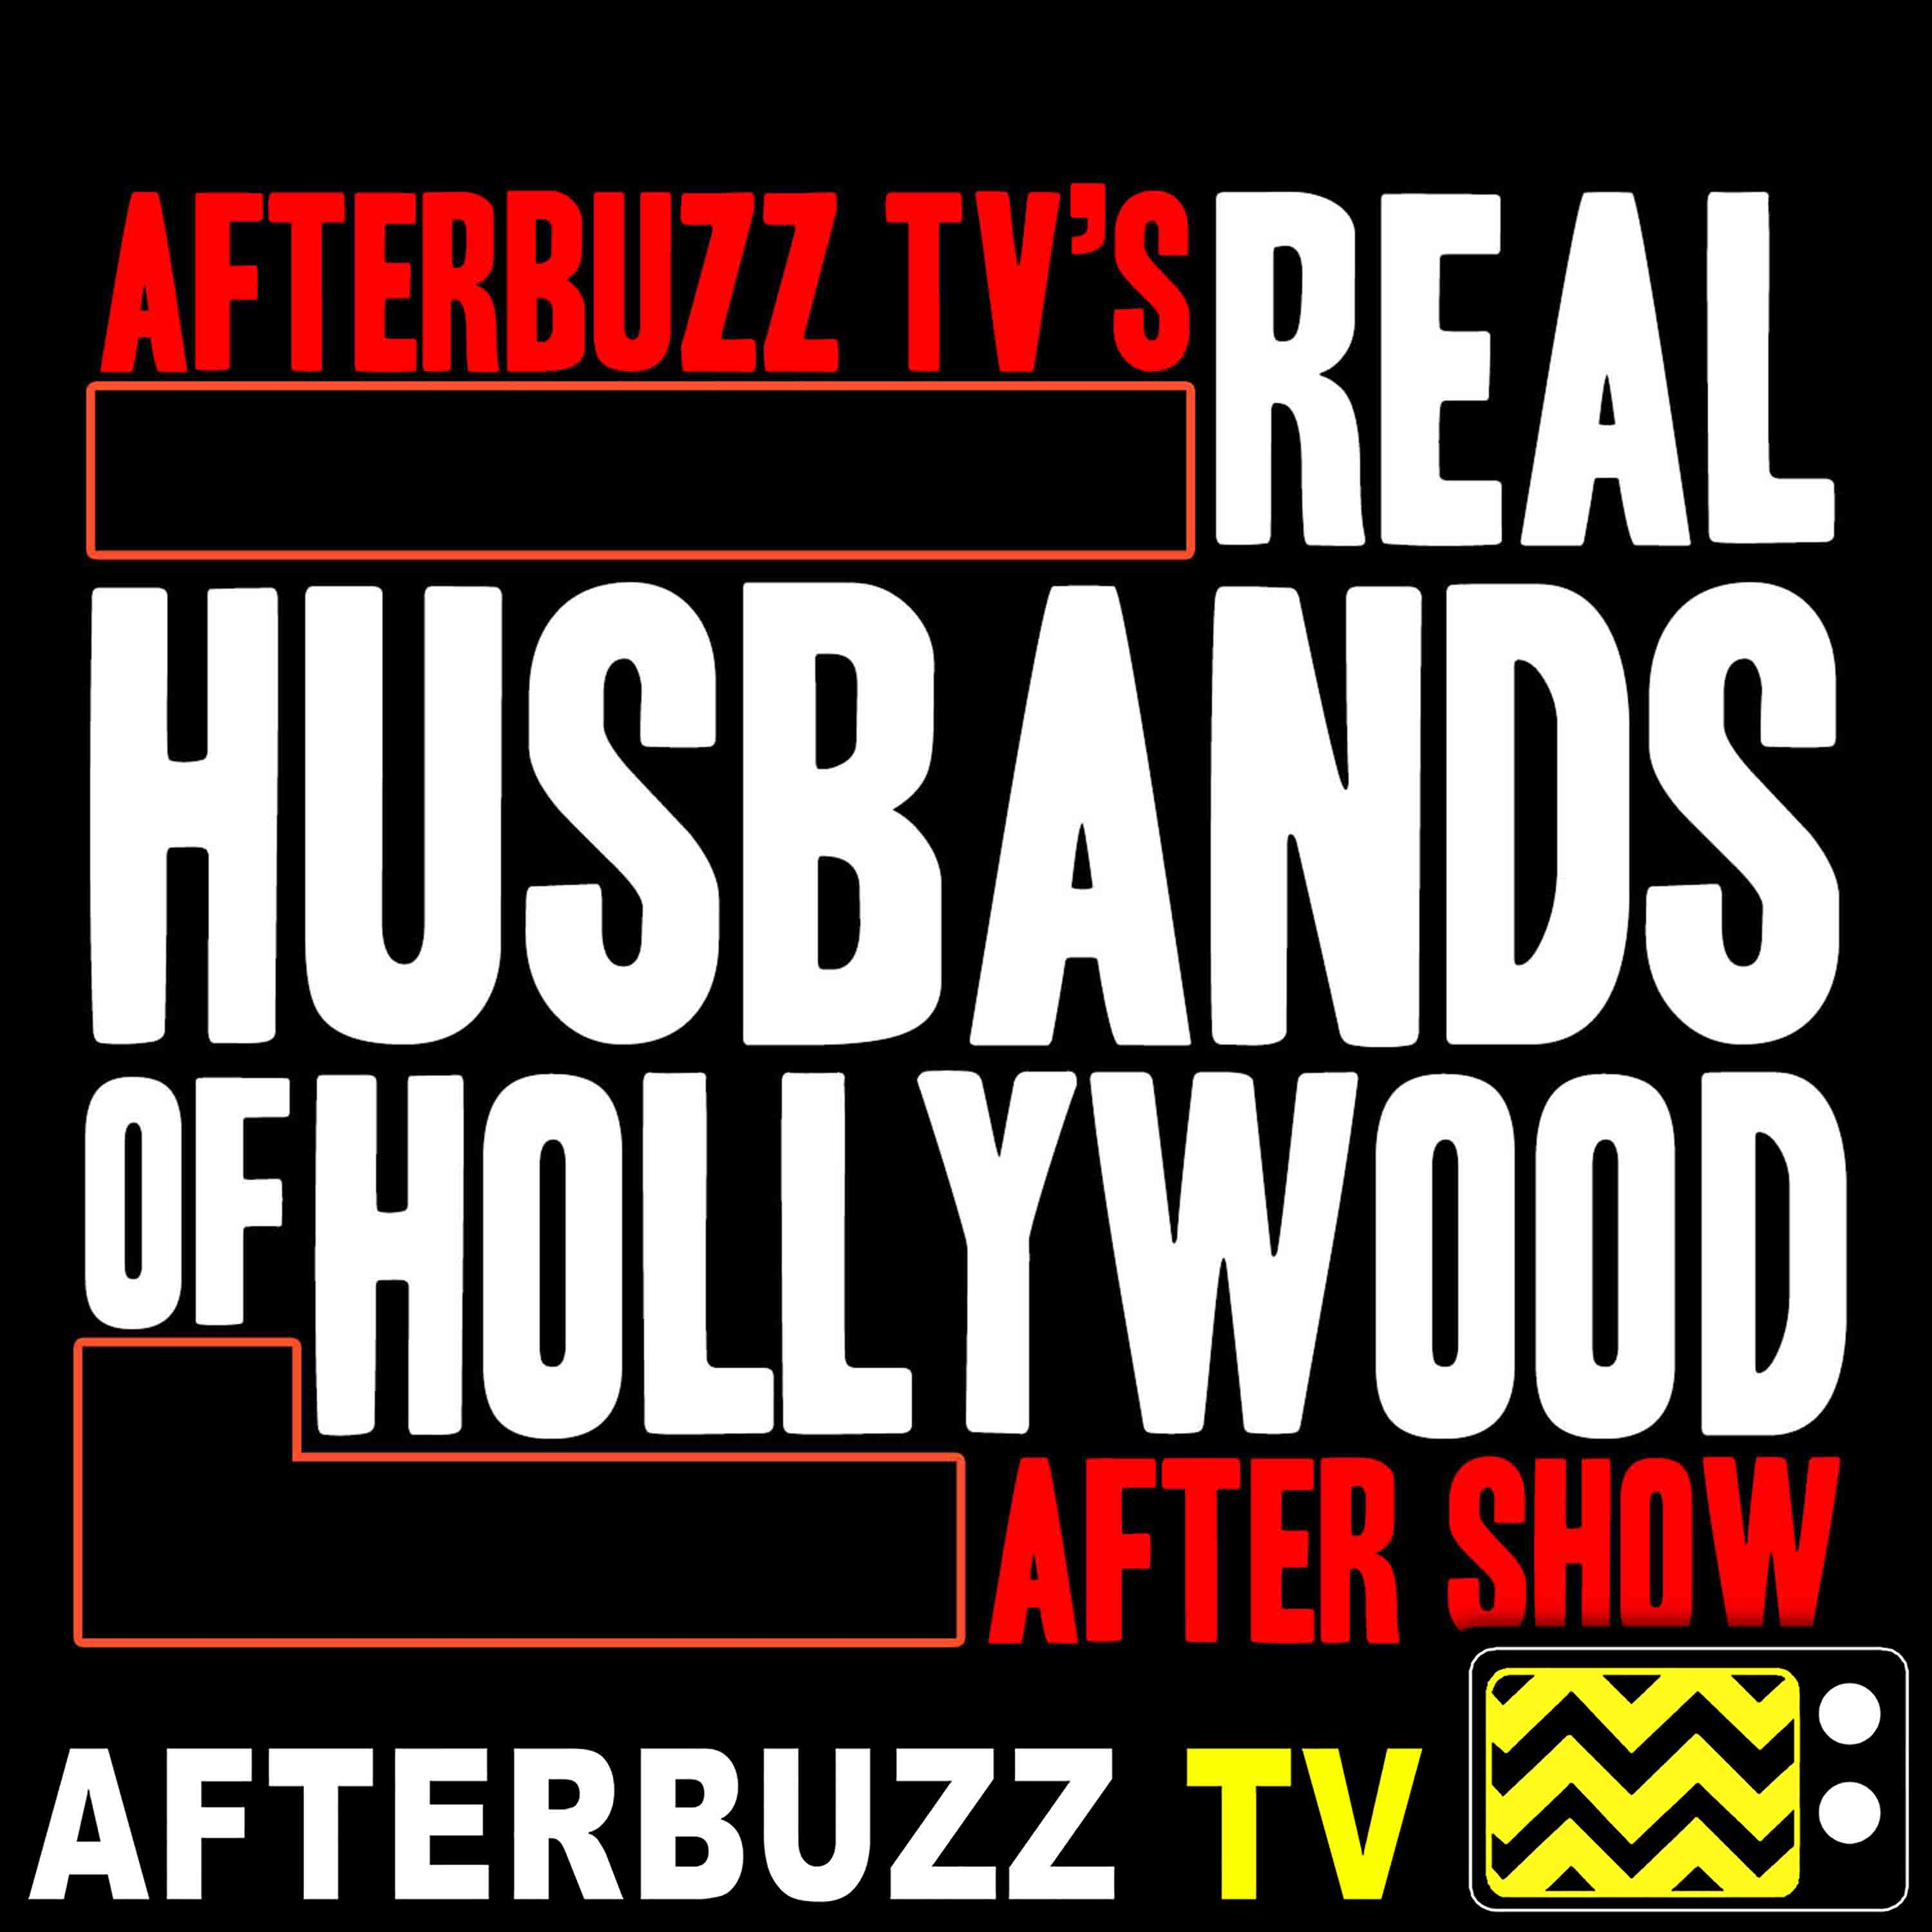 Real Husbands Of Hollywood Reviews and After Show